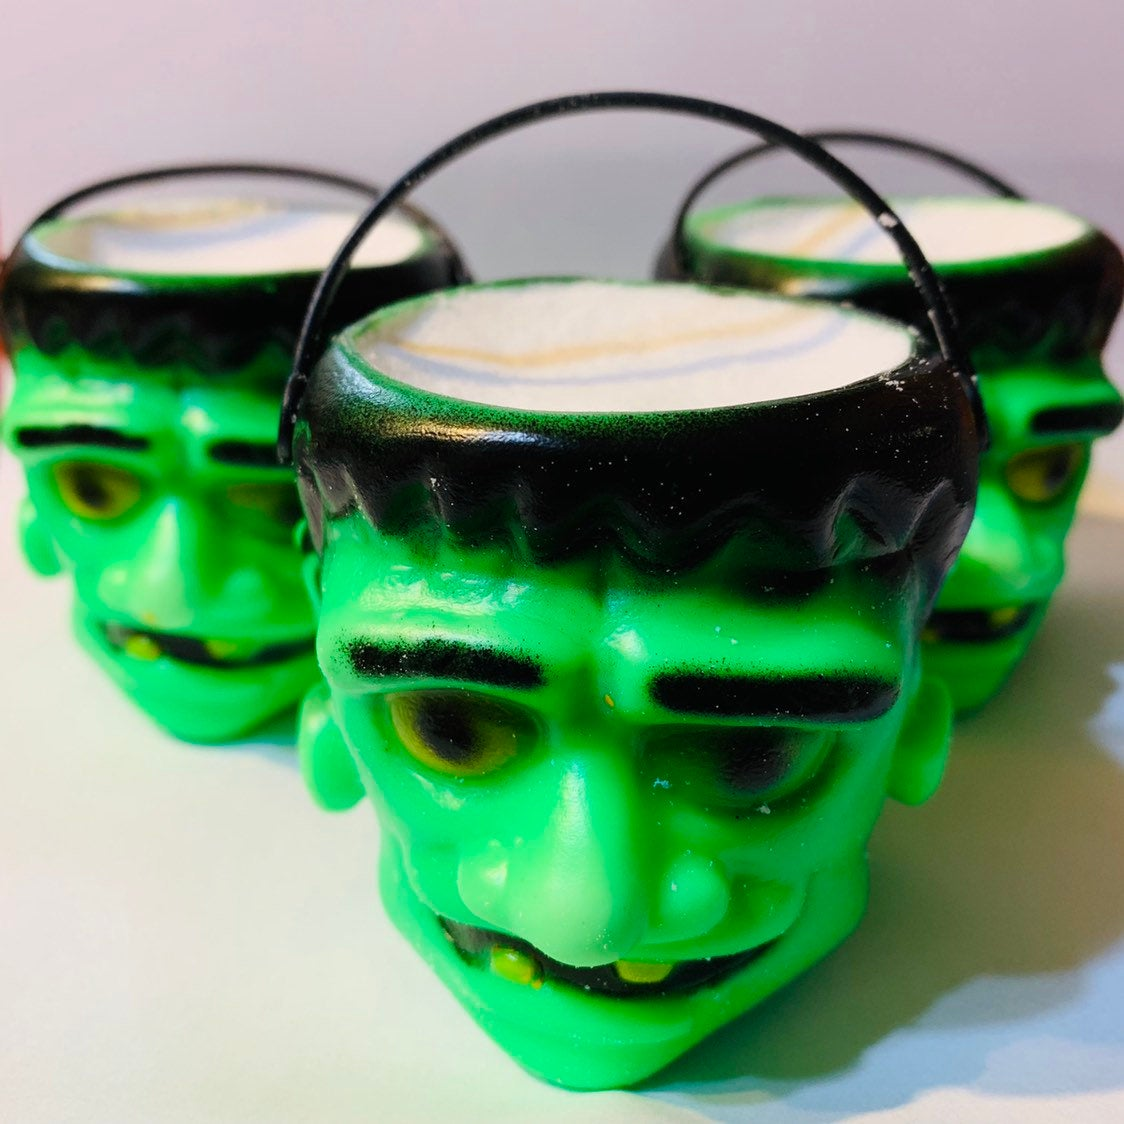 Scary Horror Frankenstein monster Bath Bomb - Melting Frankenstein Cauldron bath bomb